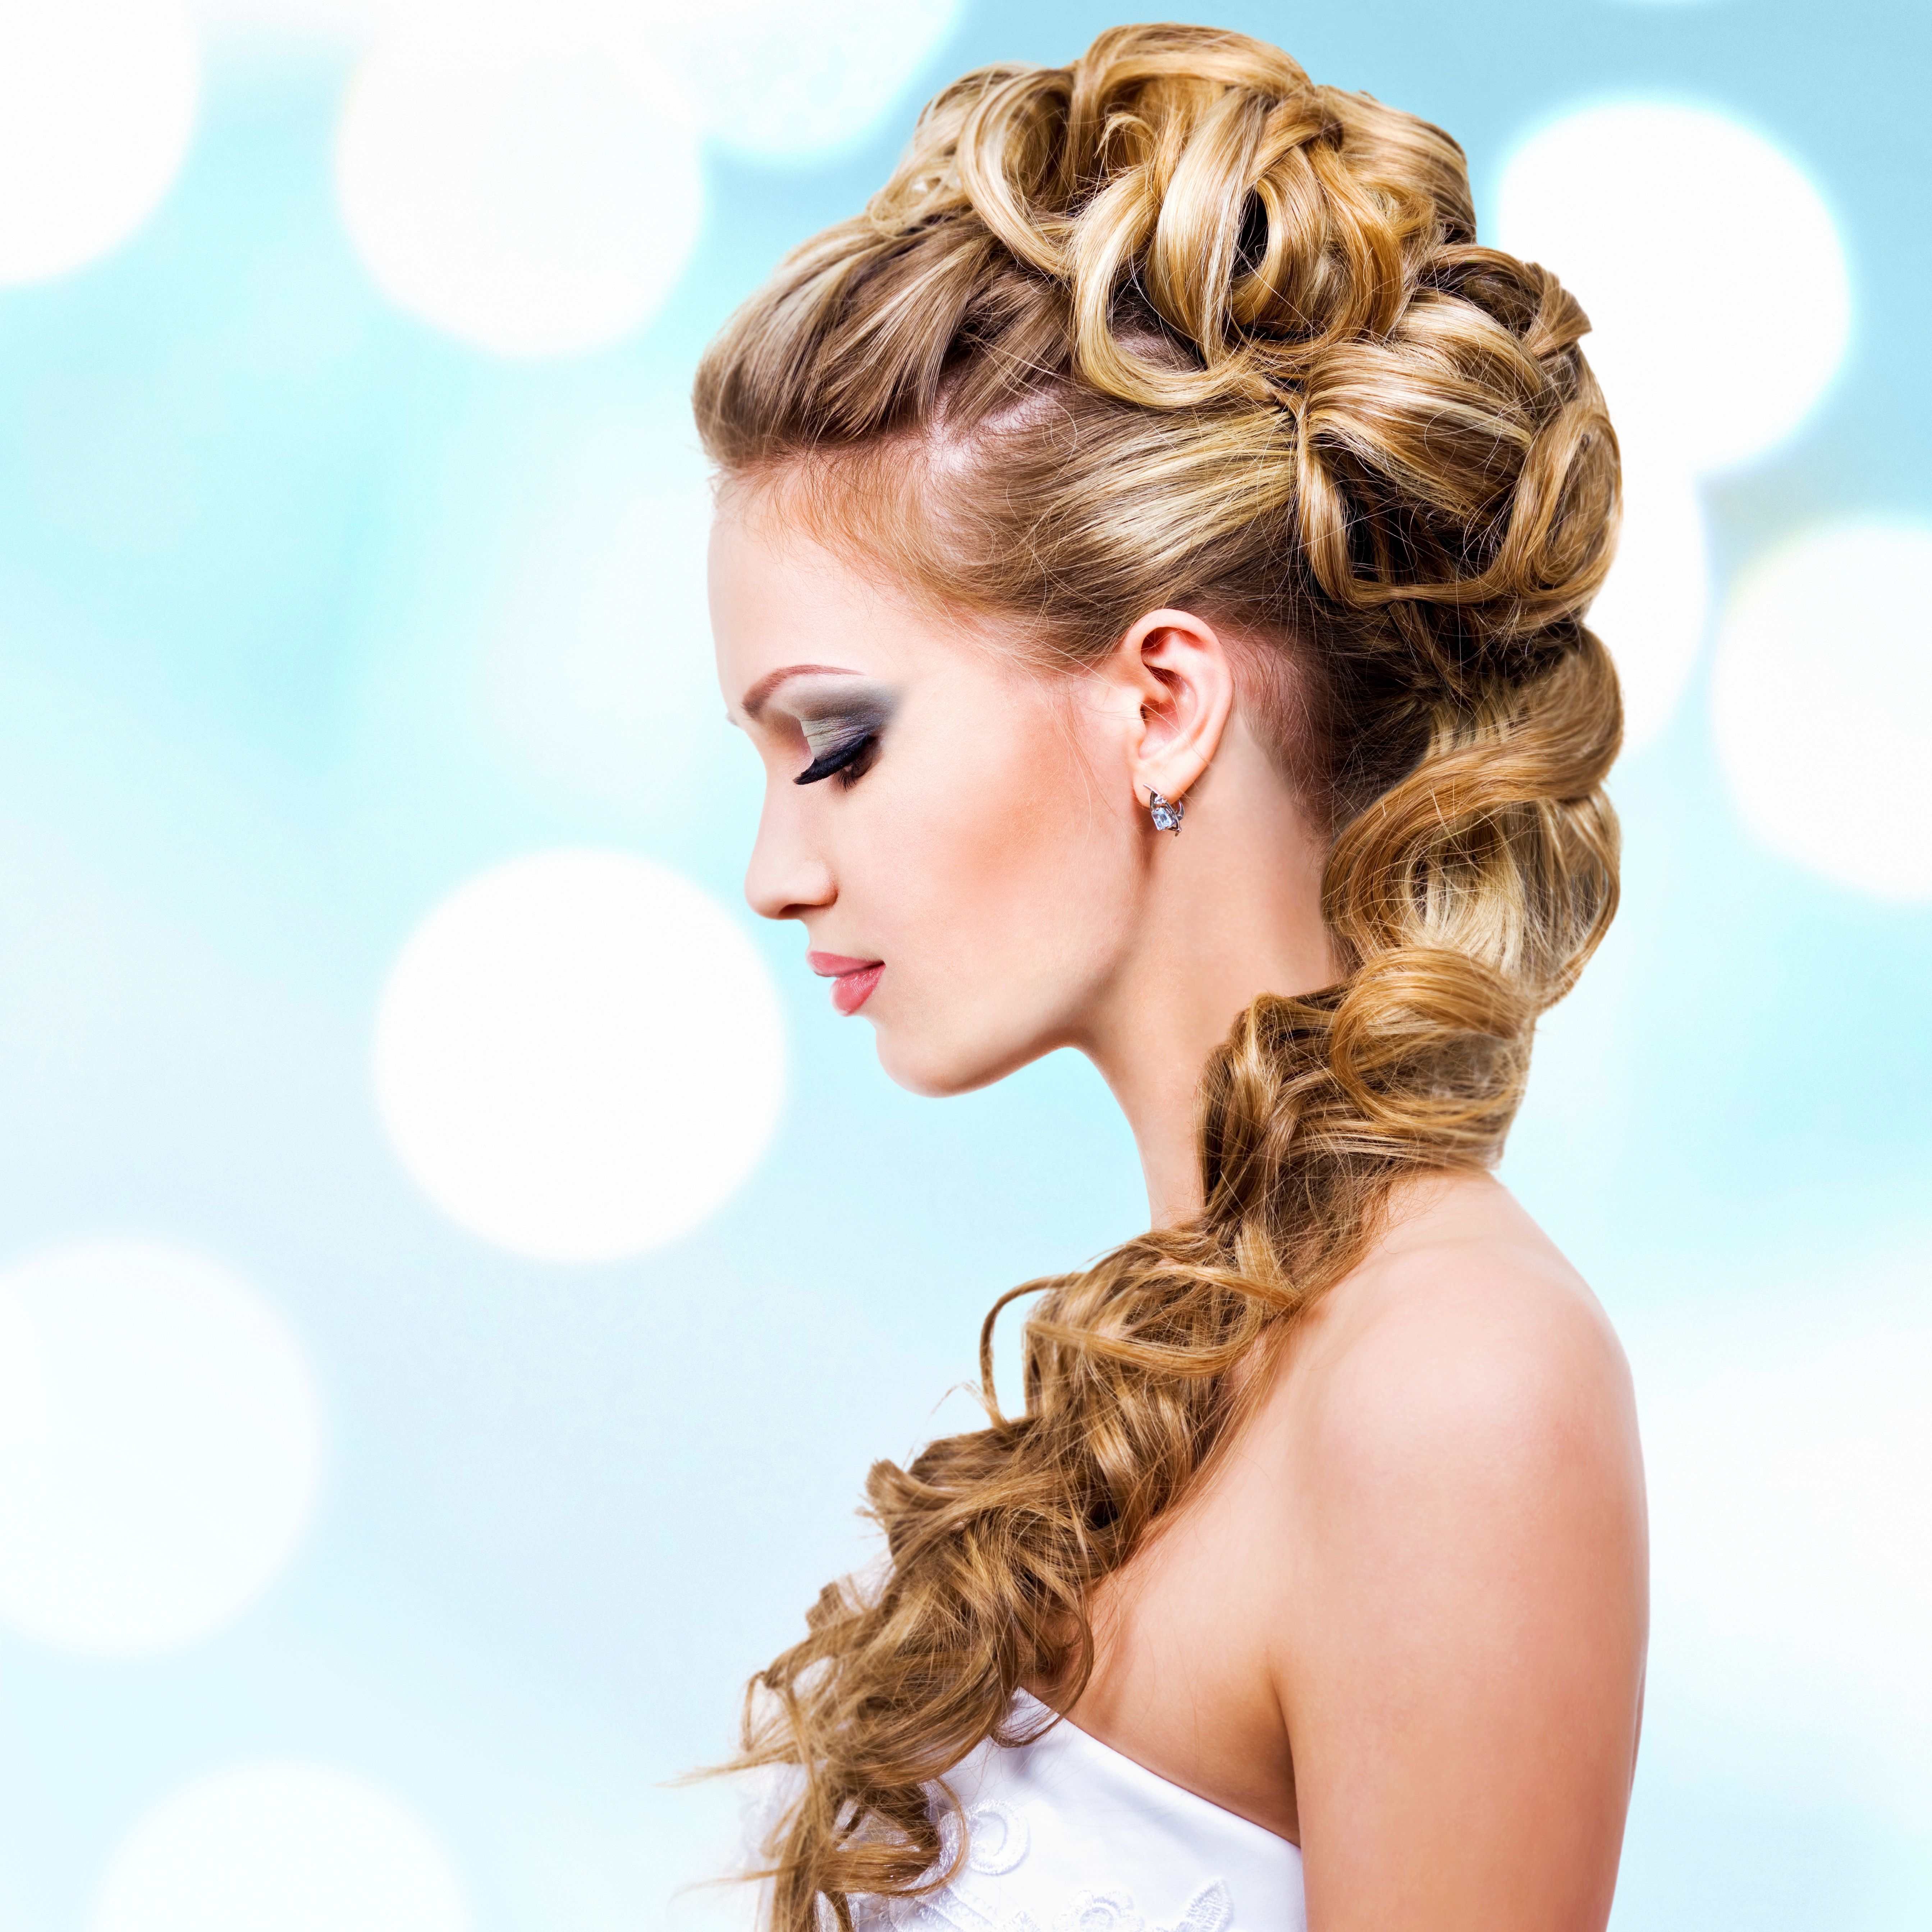 Hairstyle Hair And Makeup Artistry Hair Pinterest